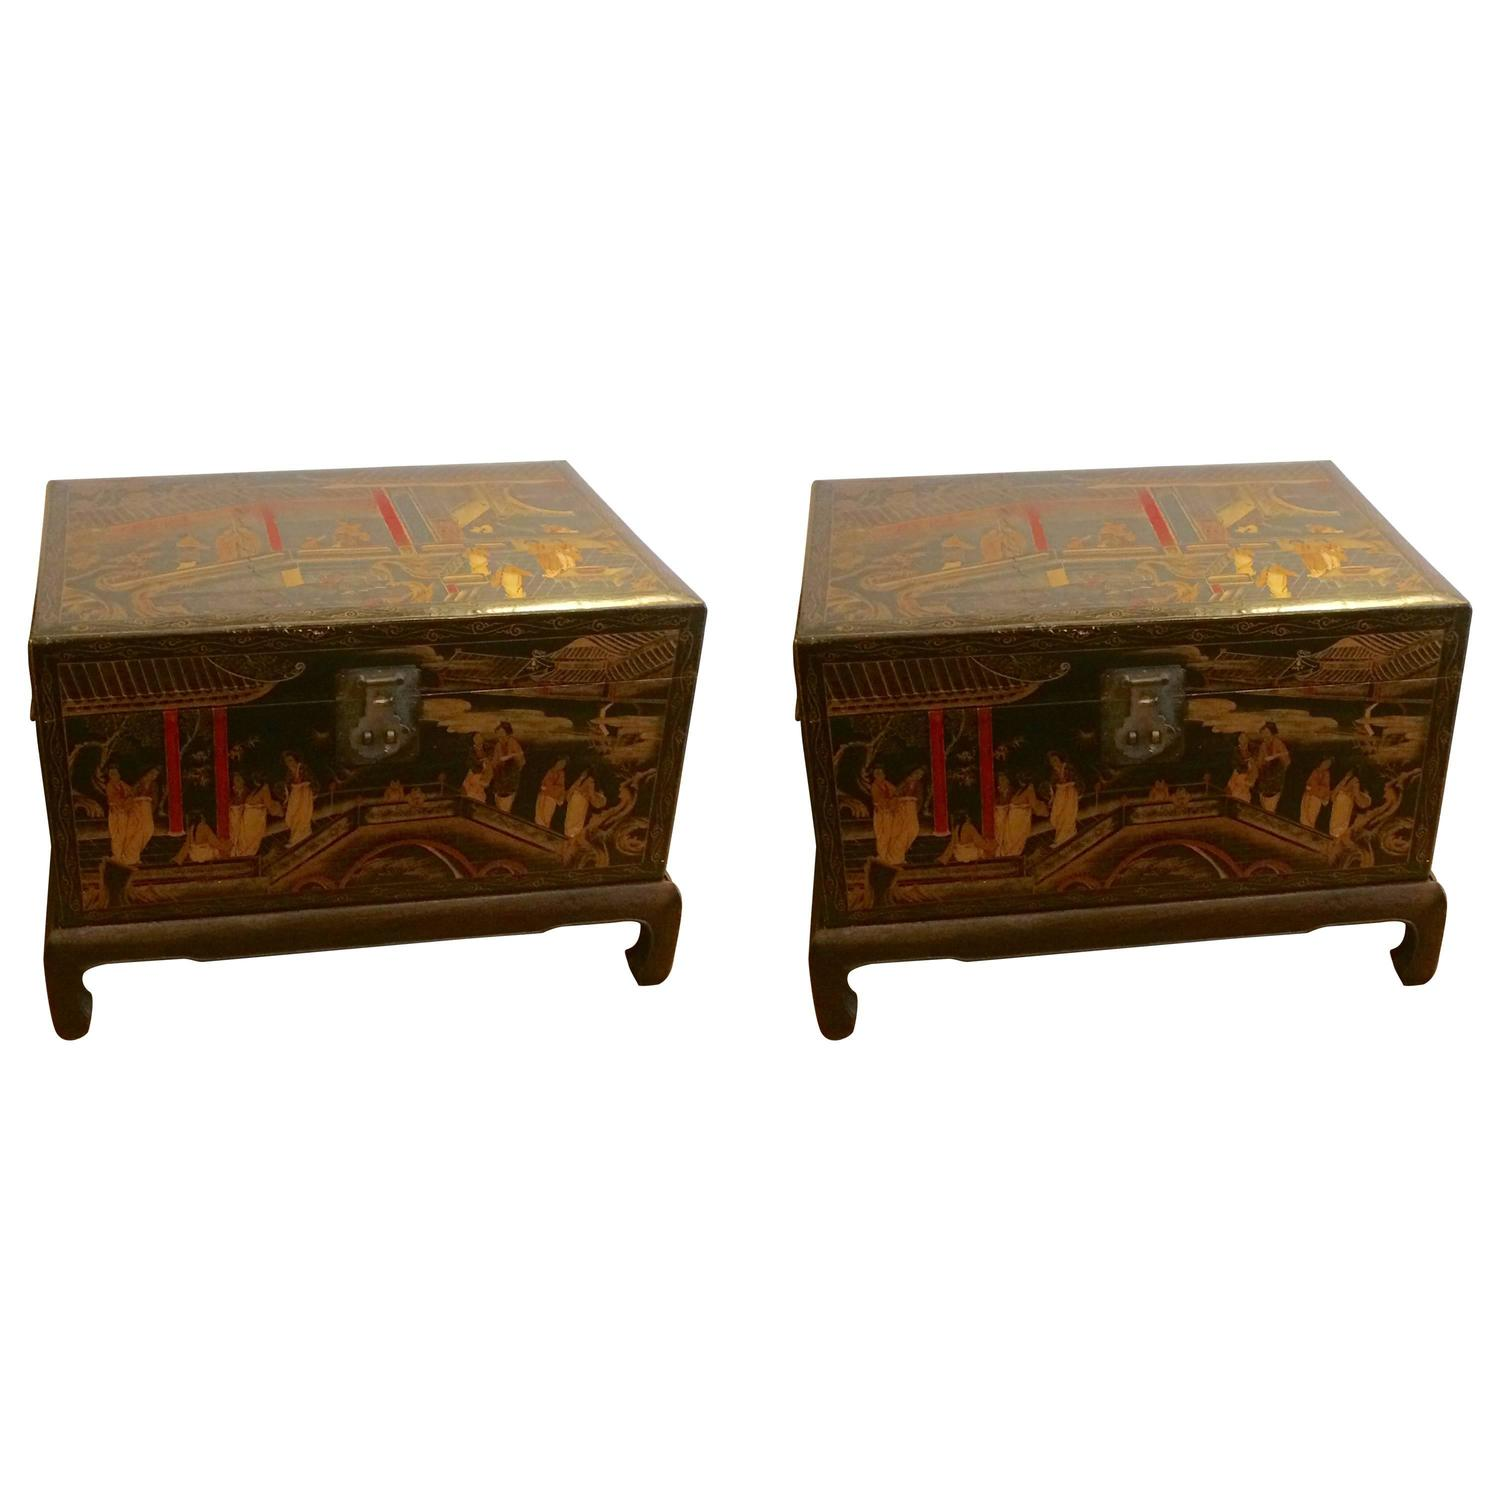 Wonderful Pair of Japanese Laquered Tea Boxes on Stands For Sale